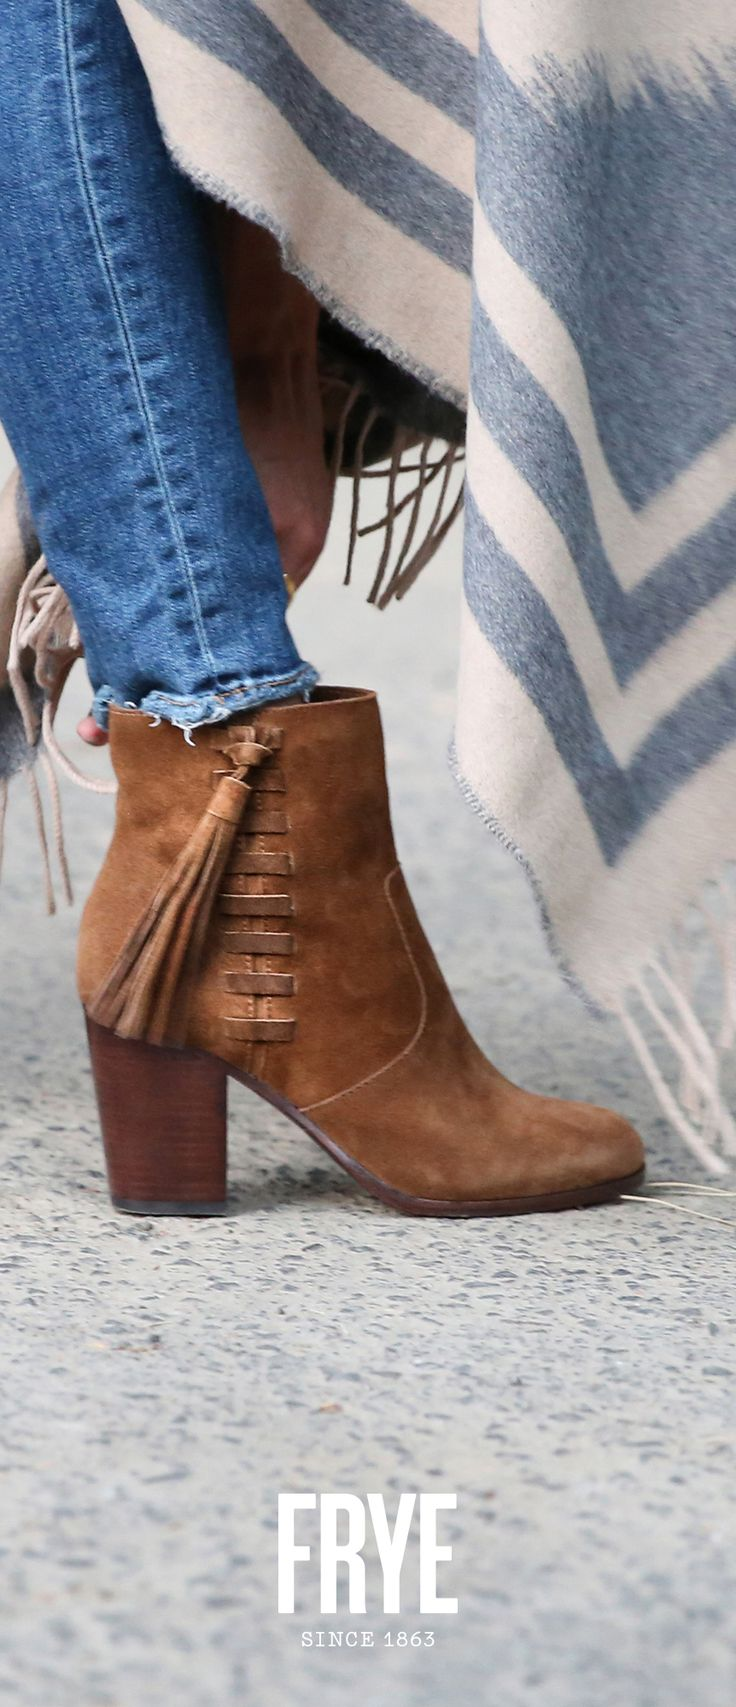 Put some swing in your step with the Myra Tassel Lace from The Frye Company.